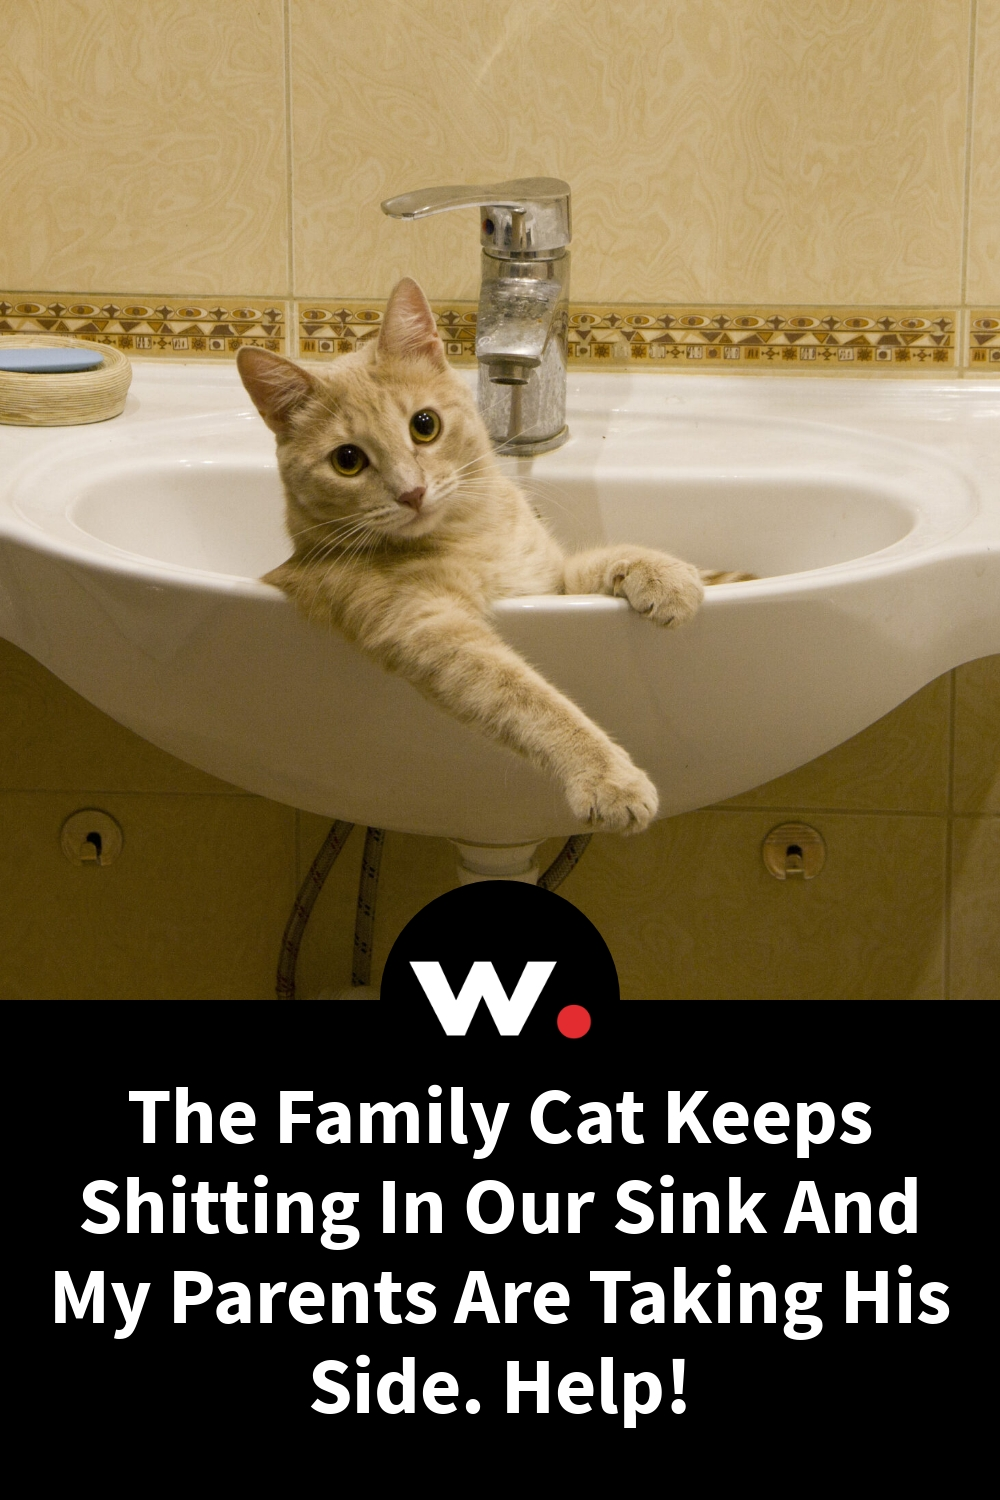 The Family Cat Keeps Shitting In Our Sink And My Parents Are Taking His Side. Help!